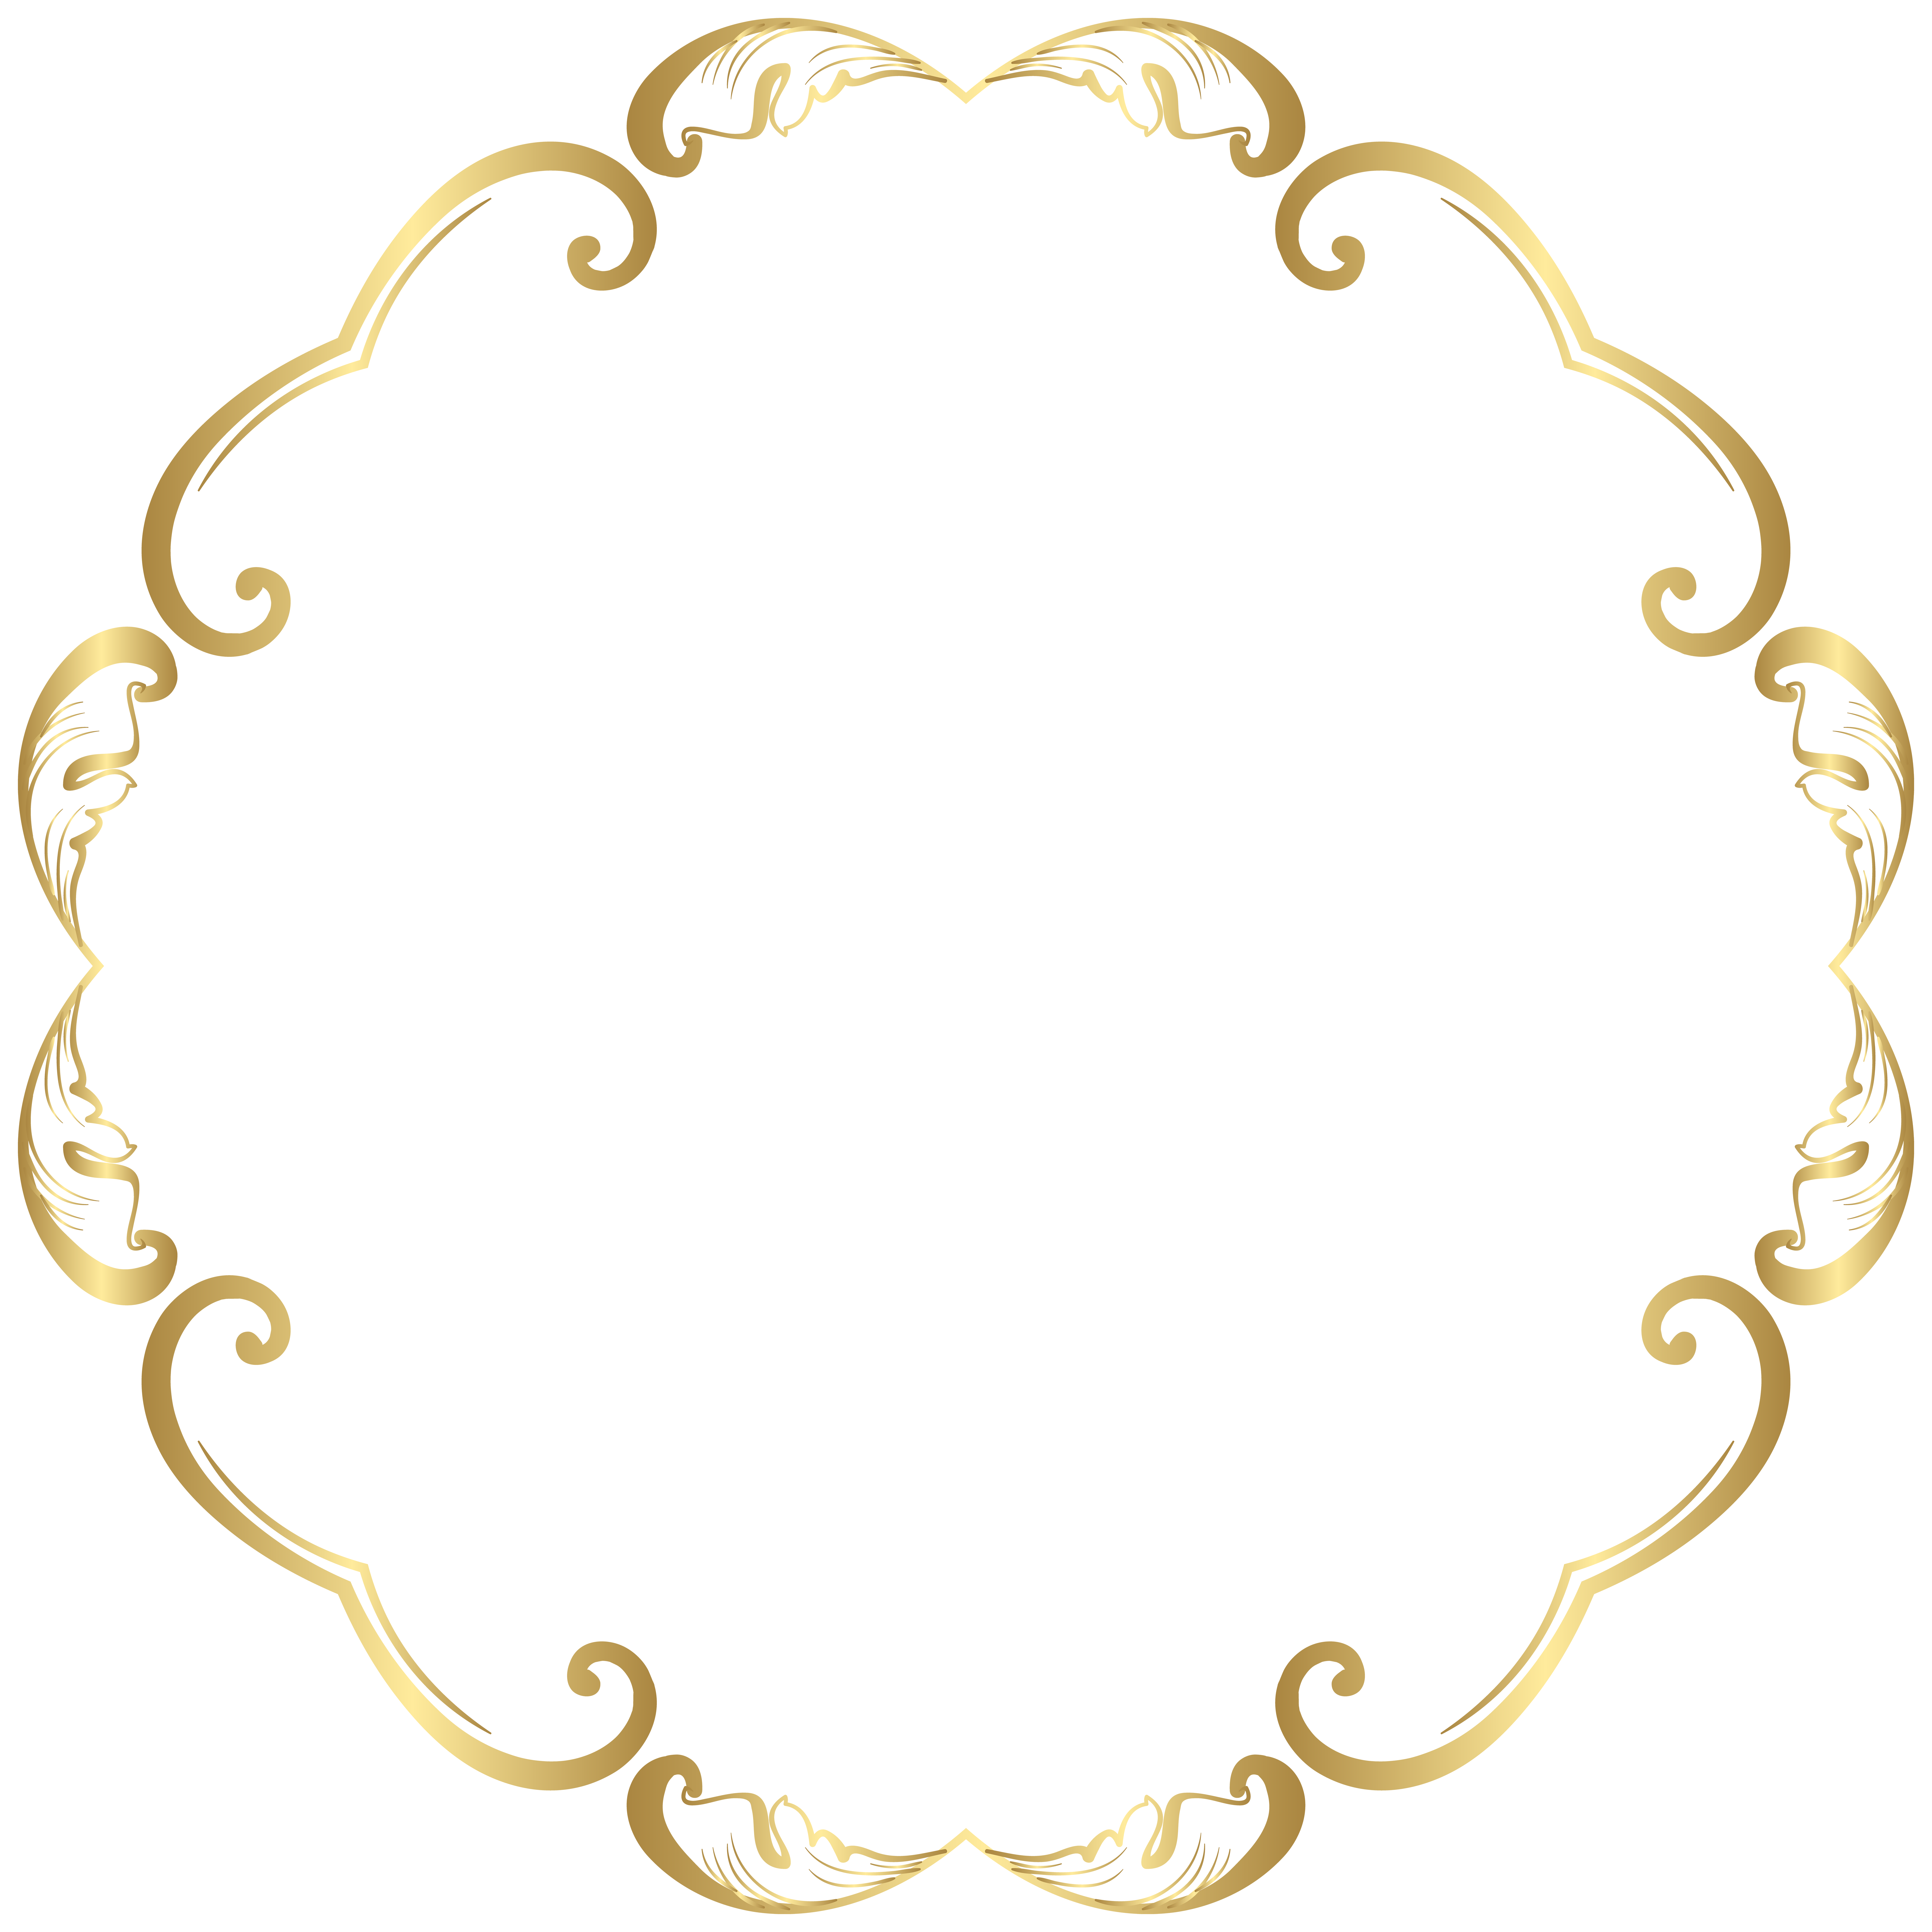 Decorative Round Border Frame Transparent Image Gallery Yopriceville High Quality Images And Transparent Frame Border Design Round Border Flower Printable